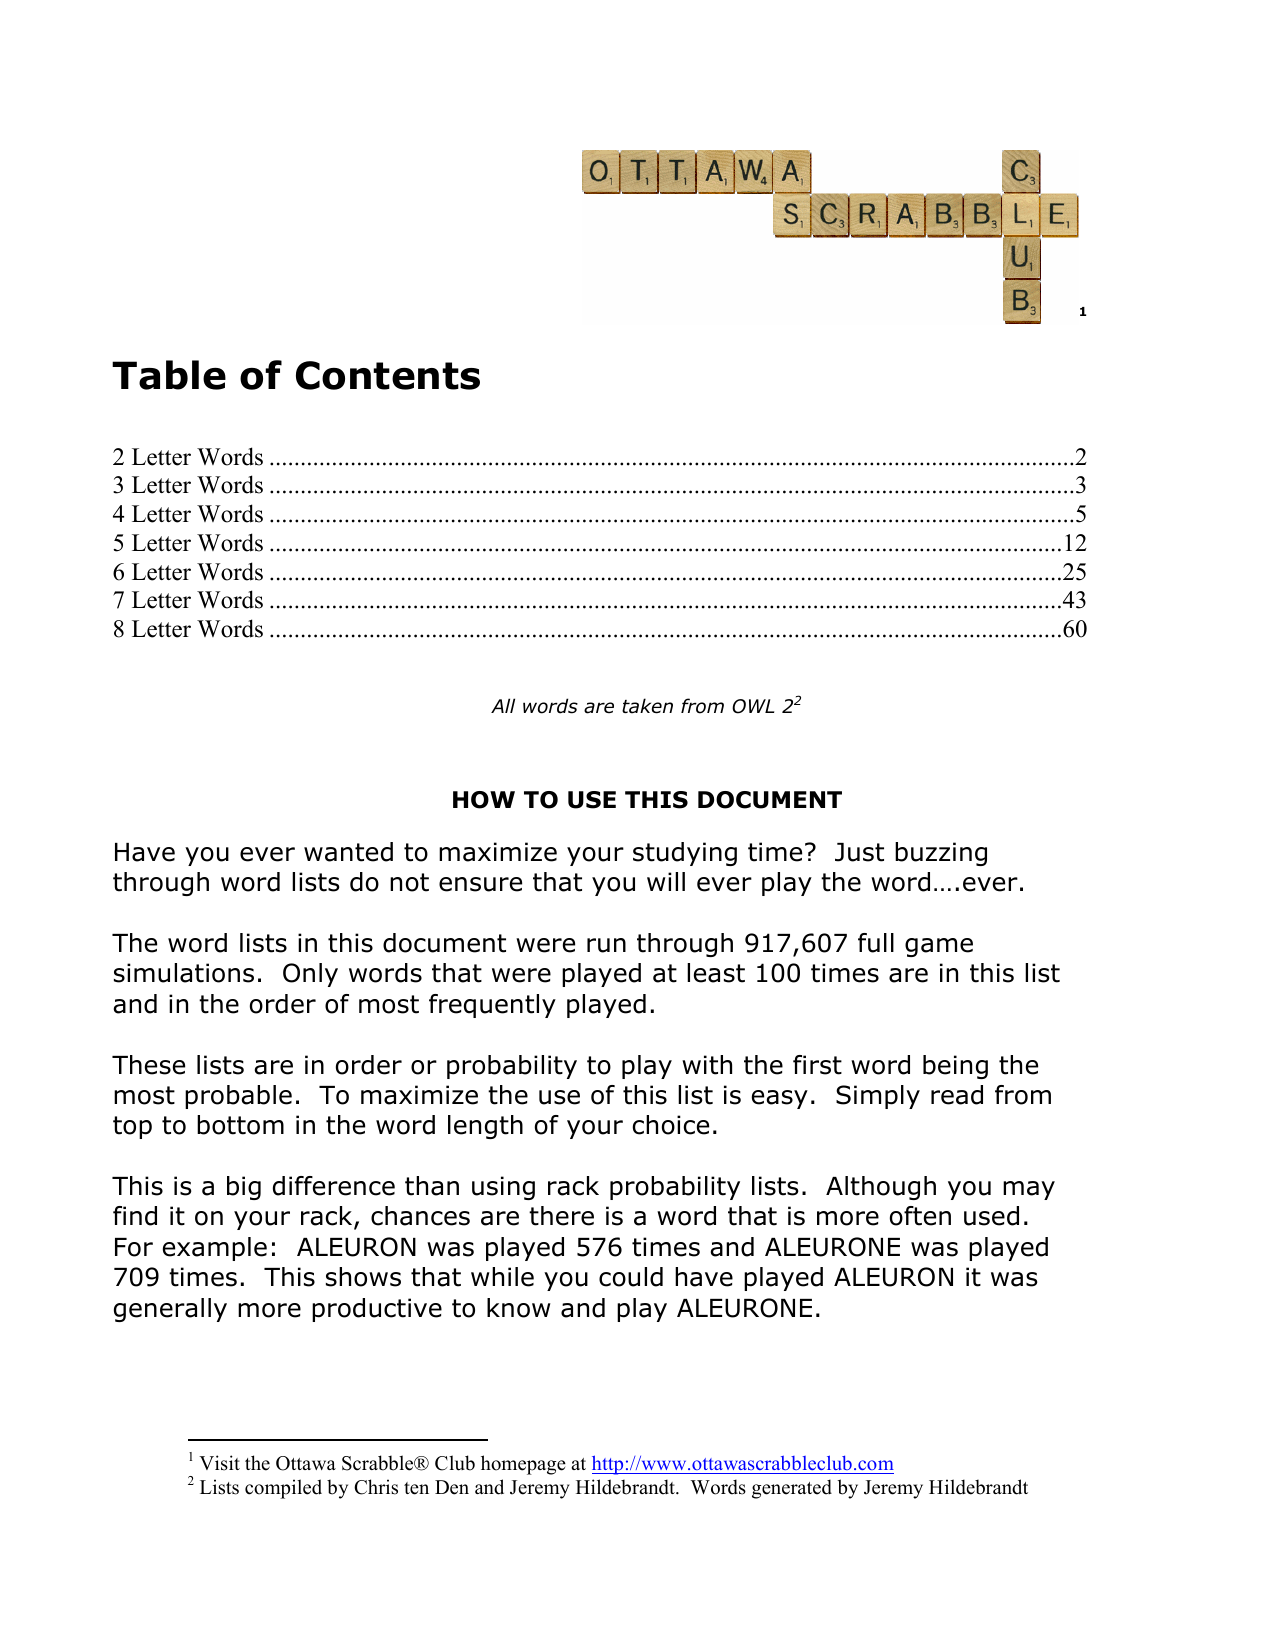 Table Of Contents Ottawa Scrabble Club 7 Way Trailer Plug Wiring Diagram Contrail Triler